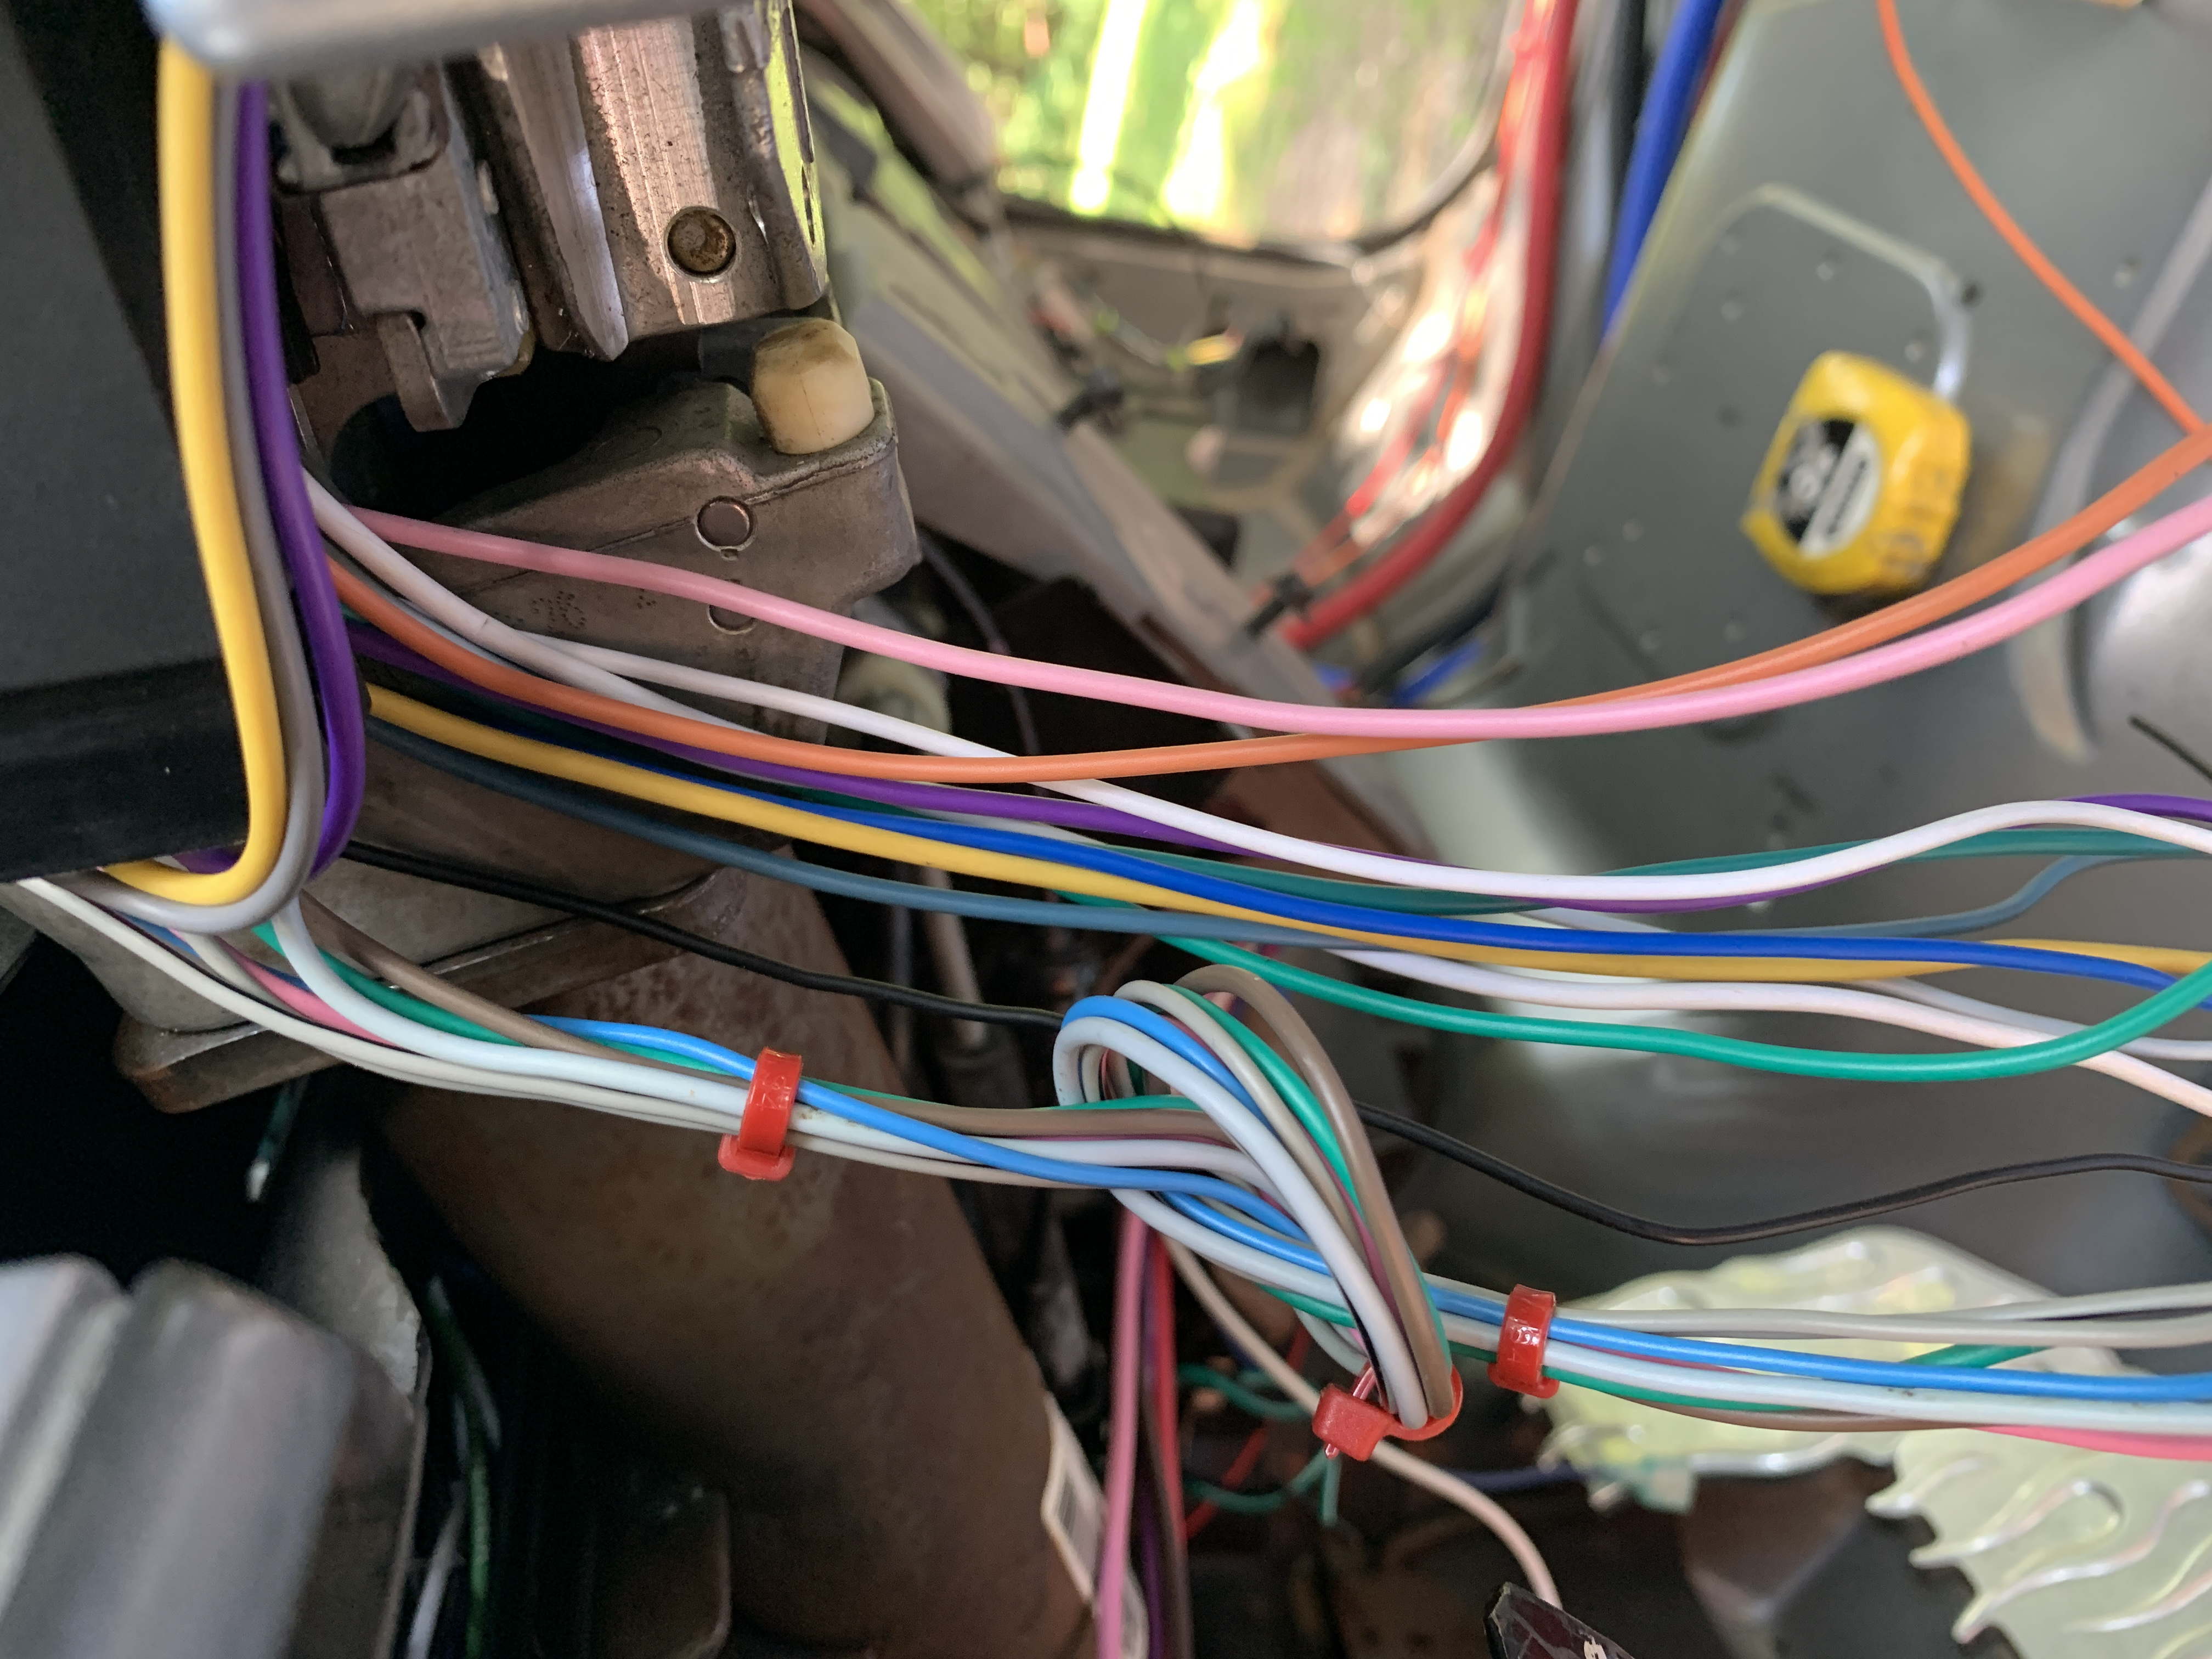 98 Suburban Turn - Wiper - Cruise Control Wires.JPG